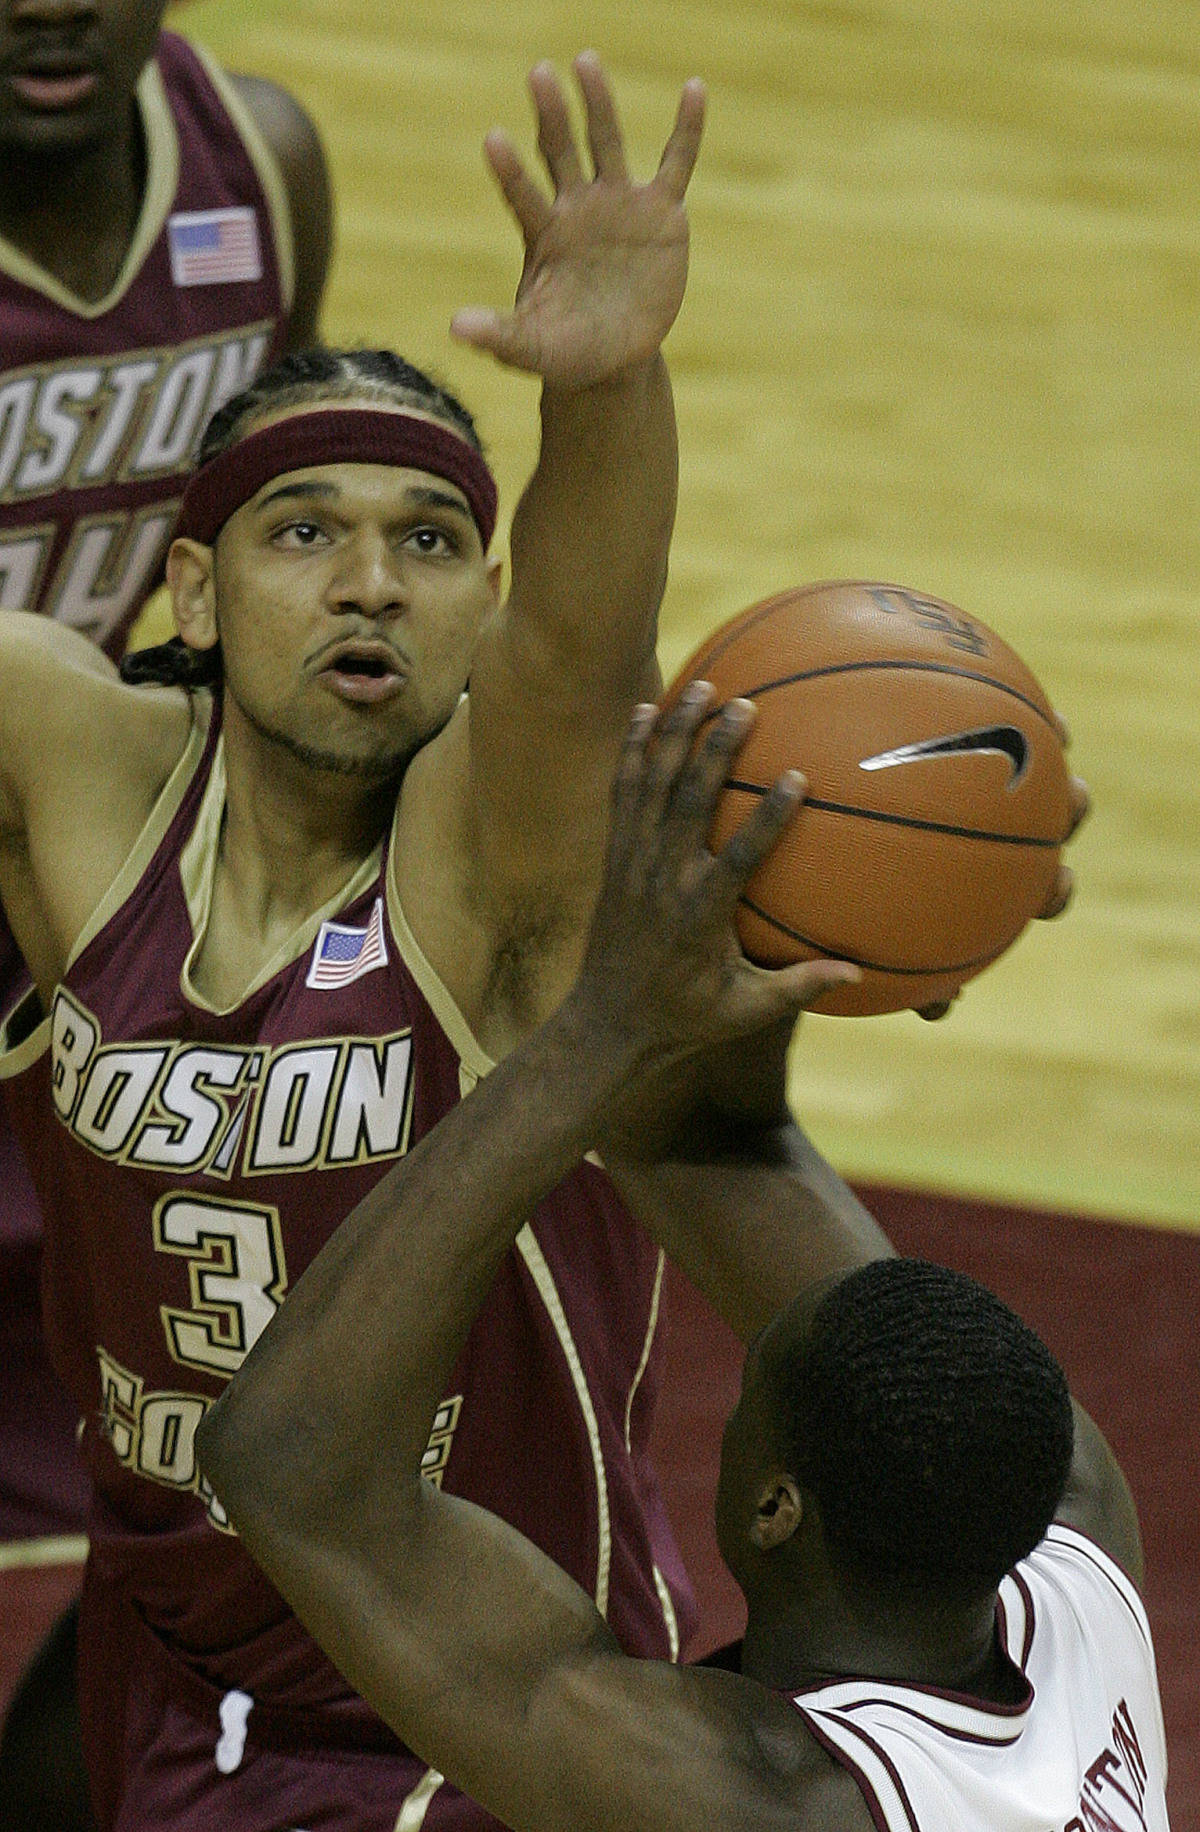 Boston College's Jared Dudley, top, blocks the shot of Florida State's Al Thornton during the first half of a college basketball game, Sunday, Feb. 11, 2007, in Tallahassee, Fla.(AP Photo/Phil Coale)